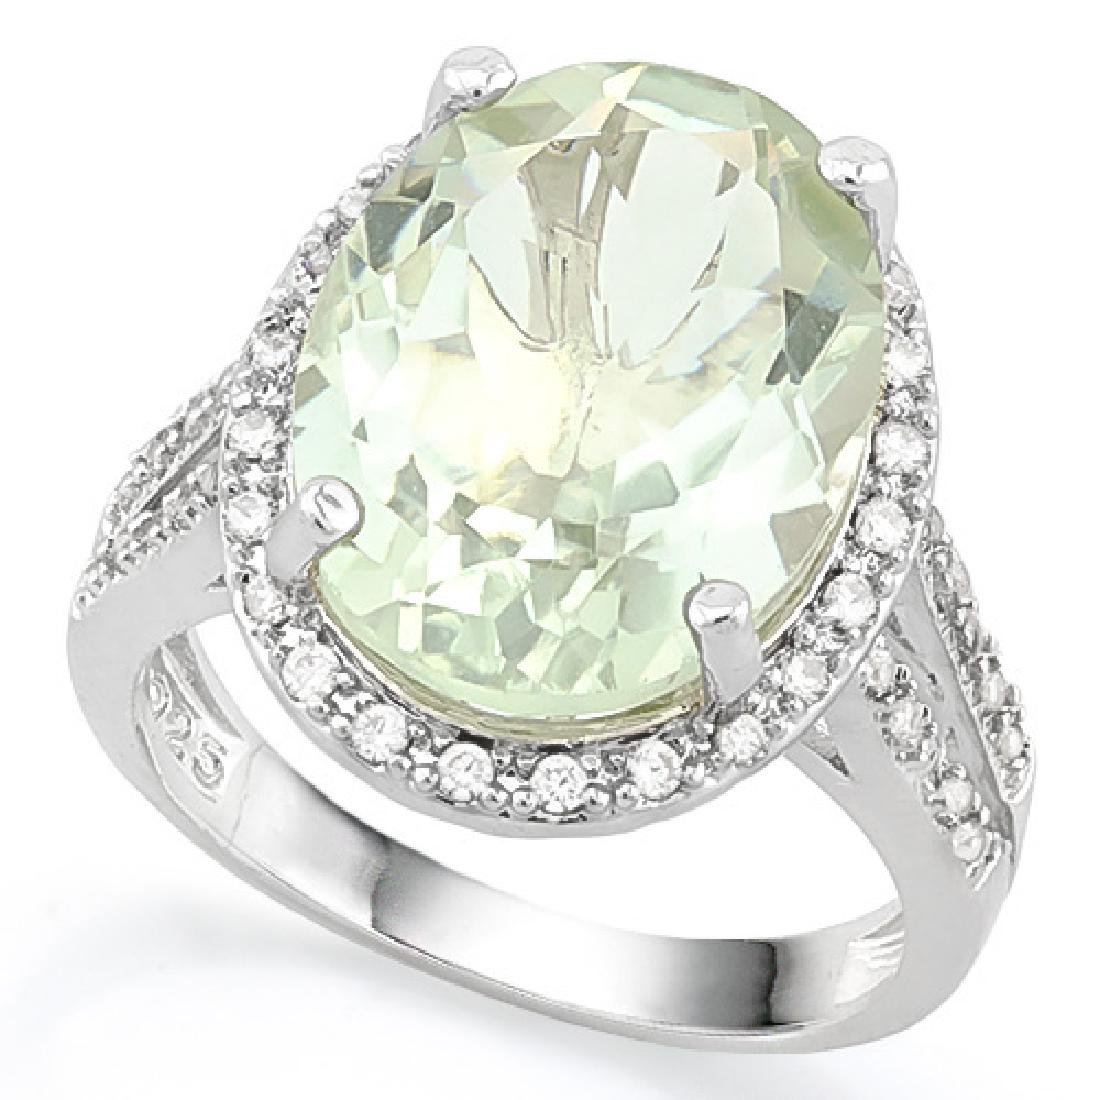 HUGE SPARKLING 8CT GREEN AMEHTYST COCKTAIL RING